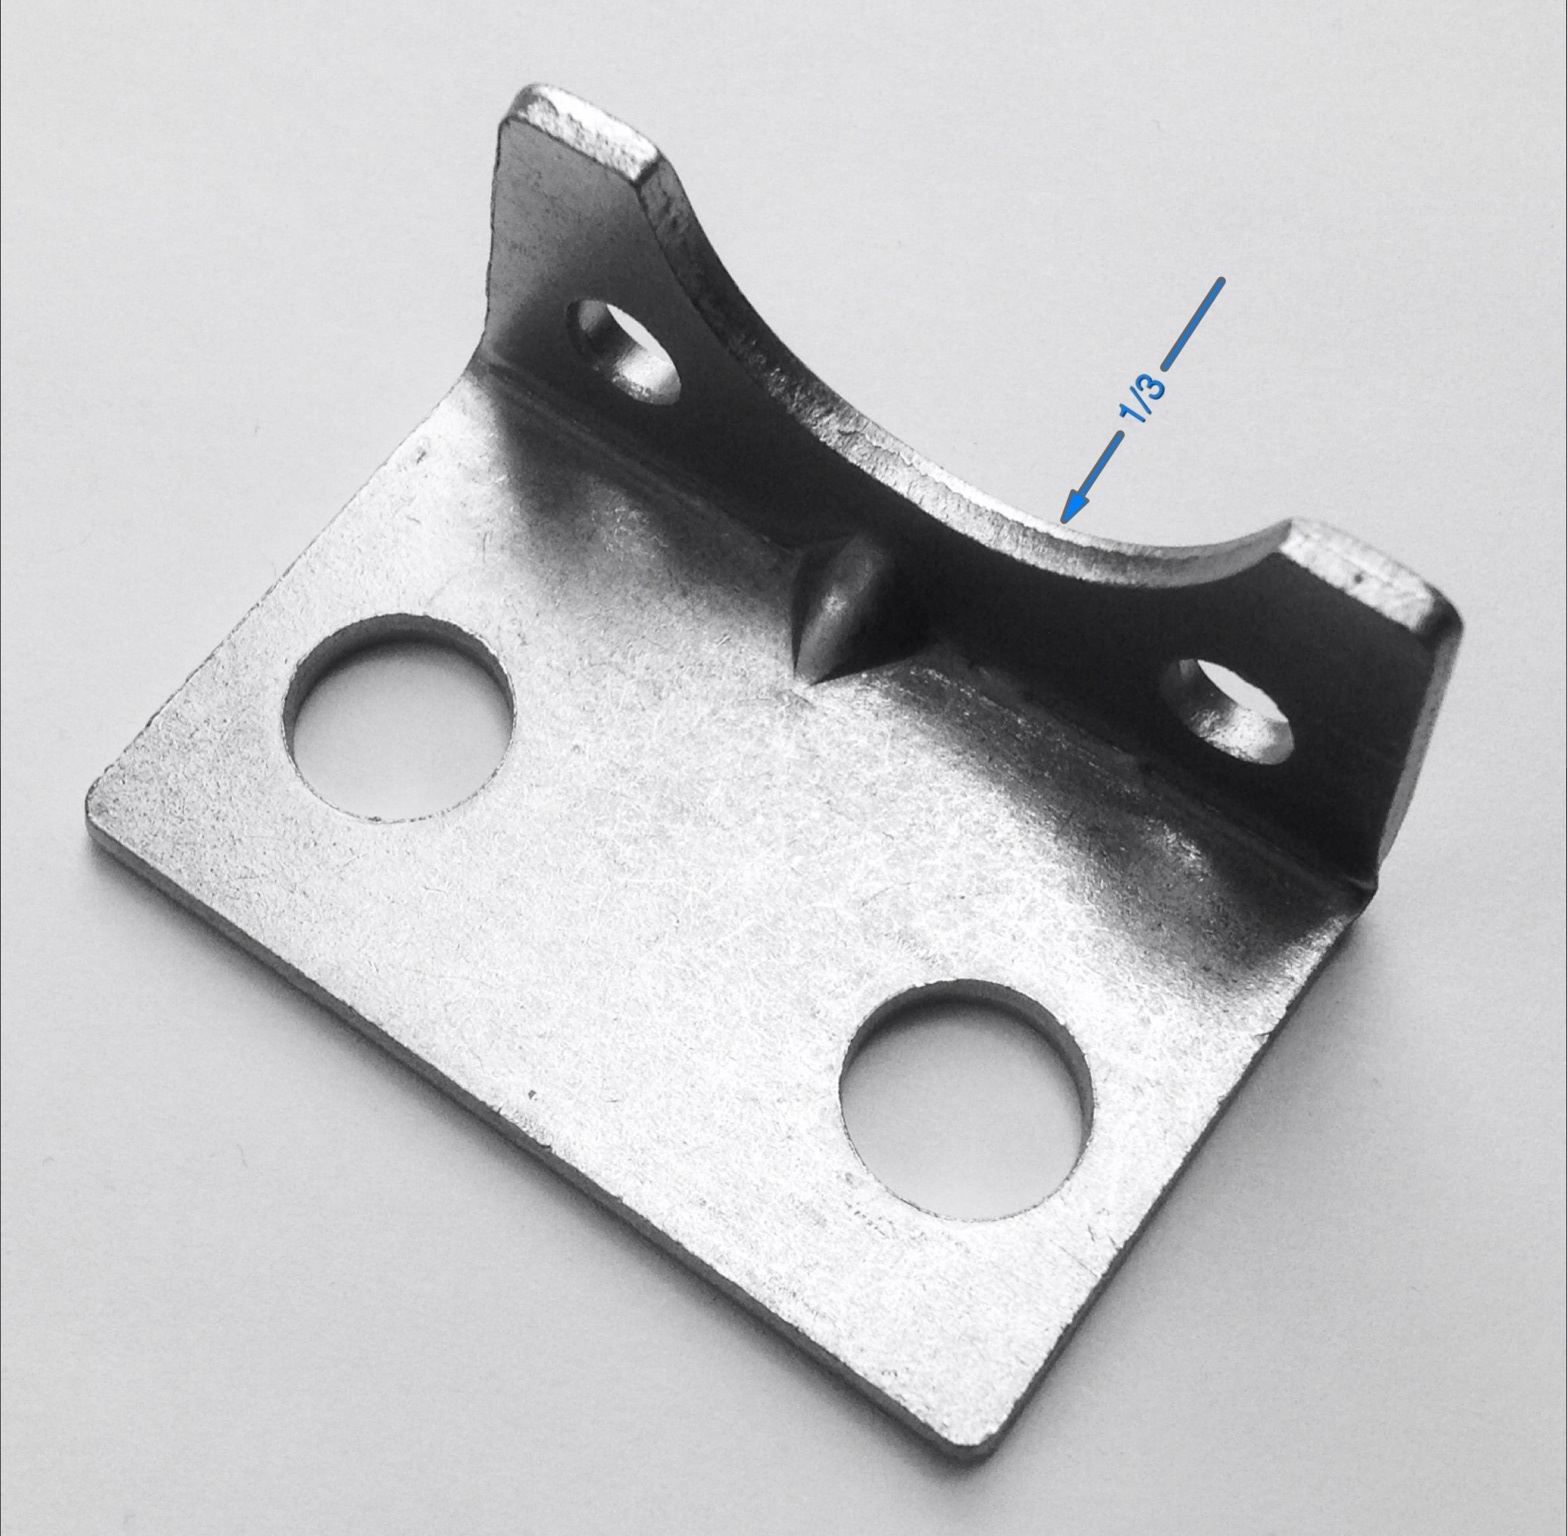 Optimum Cutting Clearance Of Blanking Sheet Metal